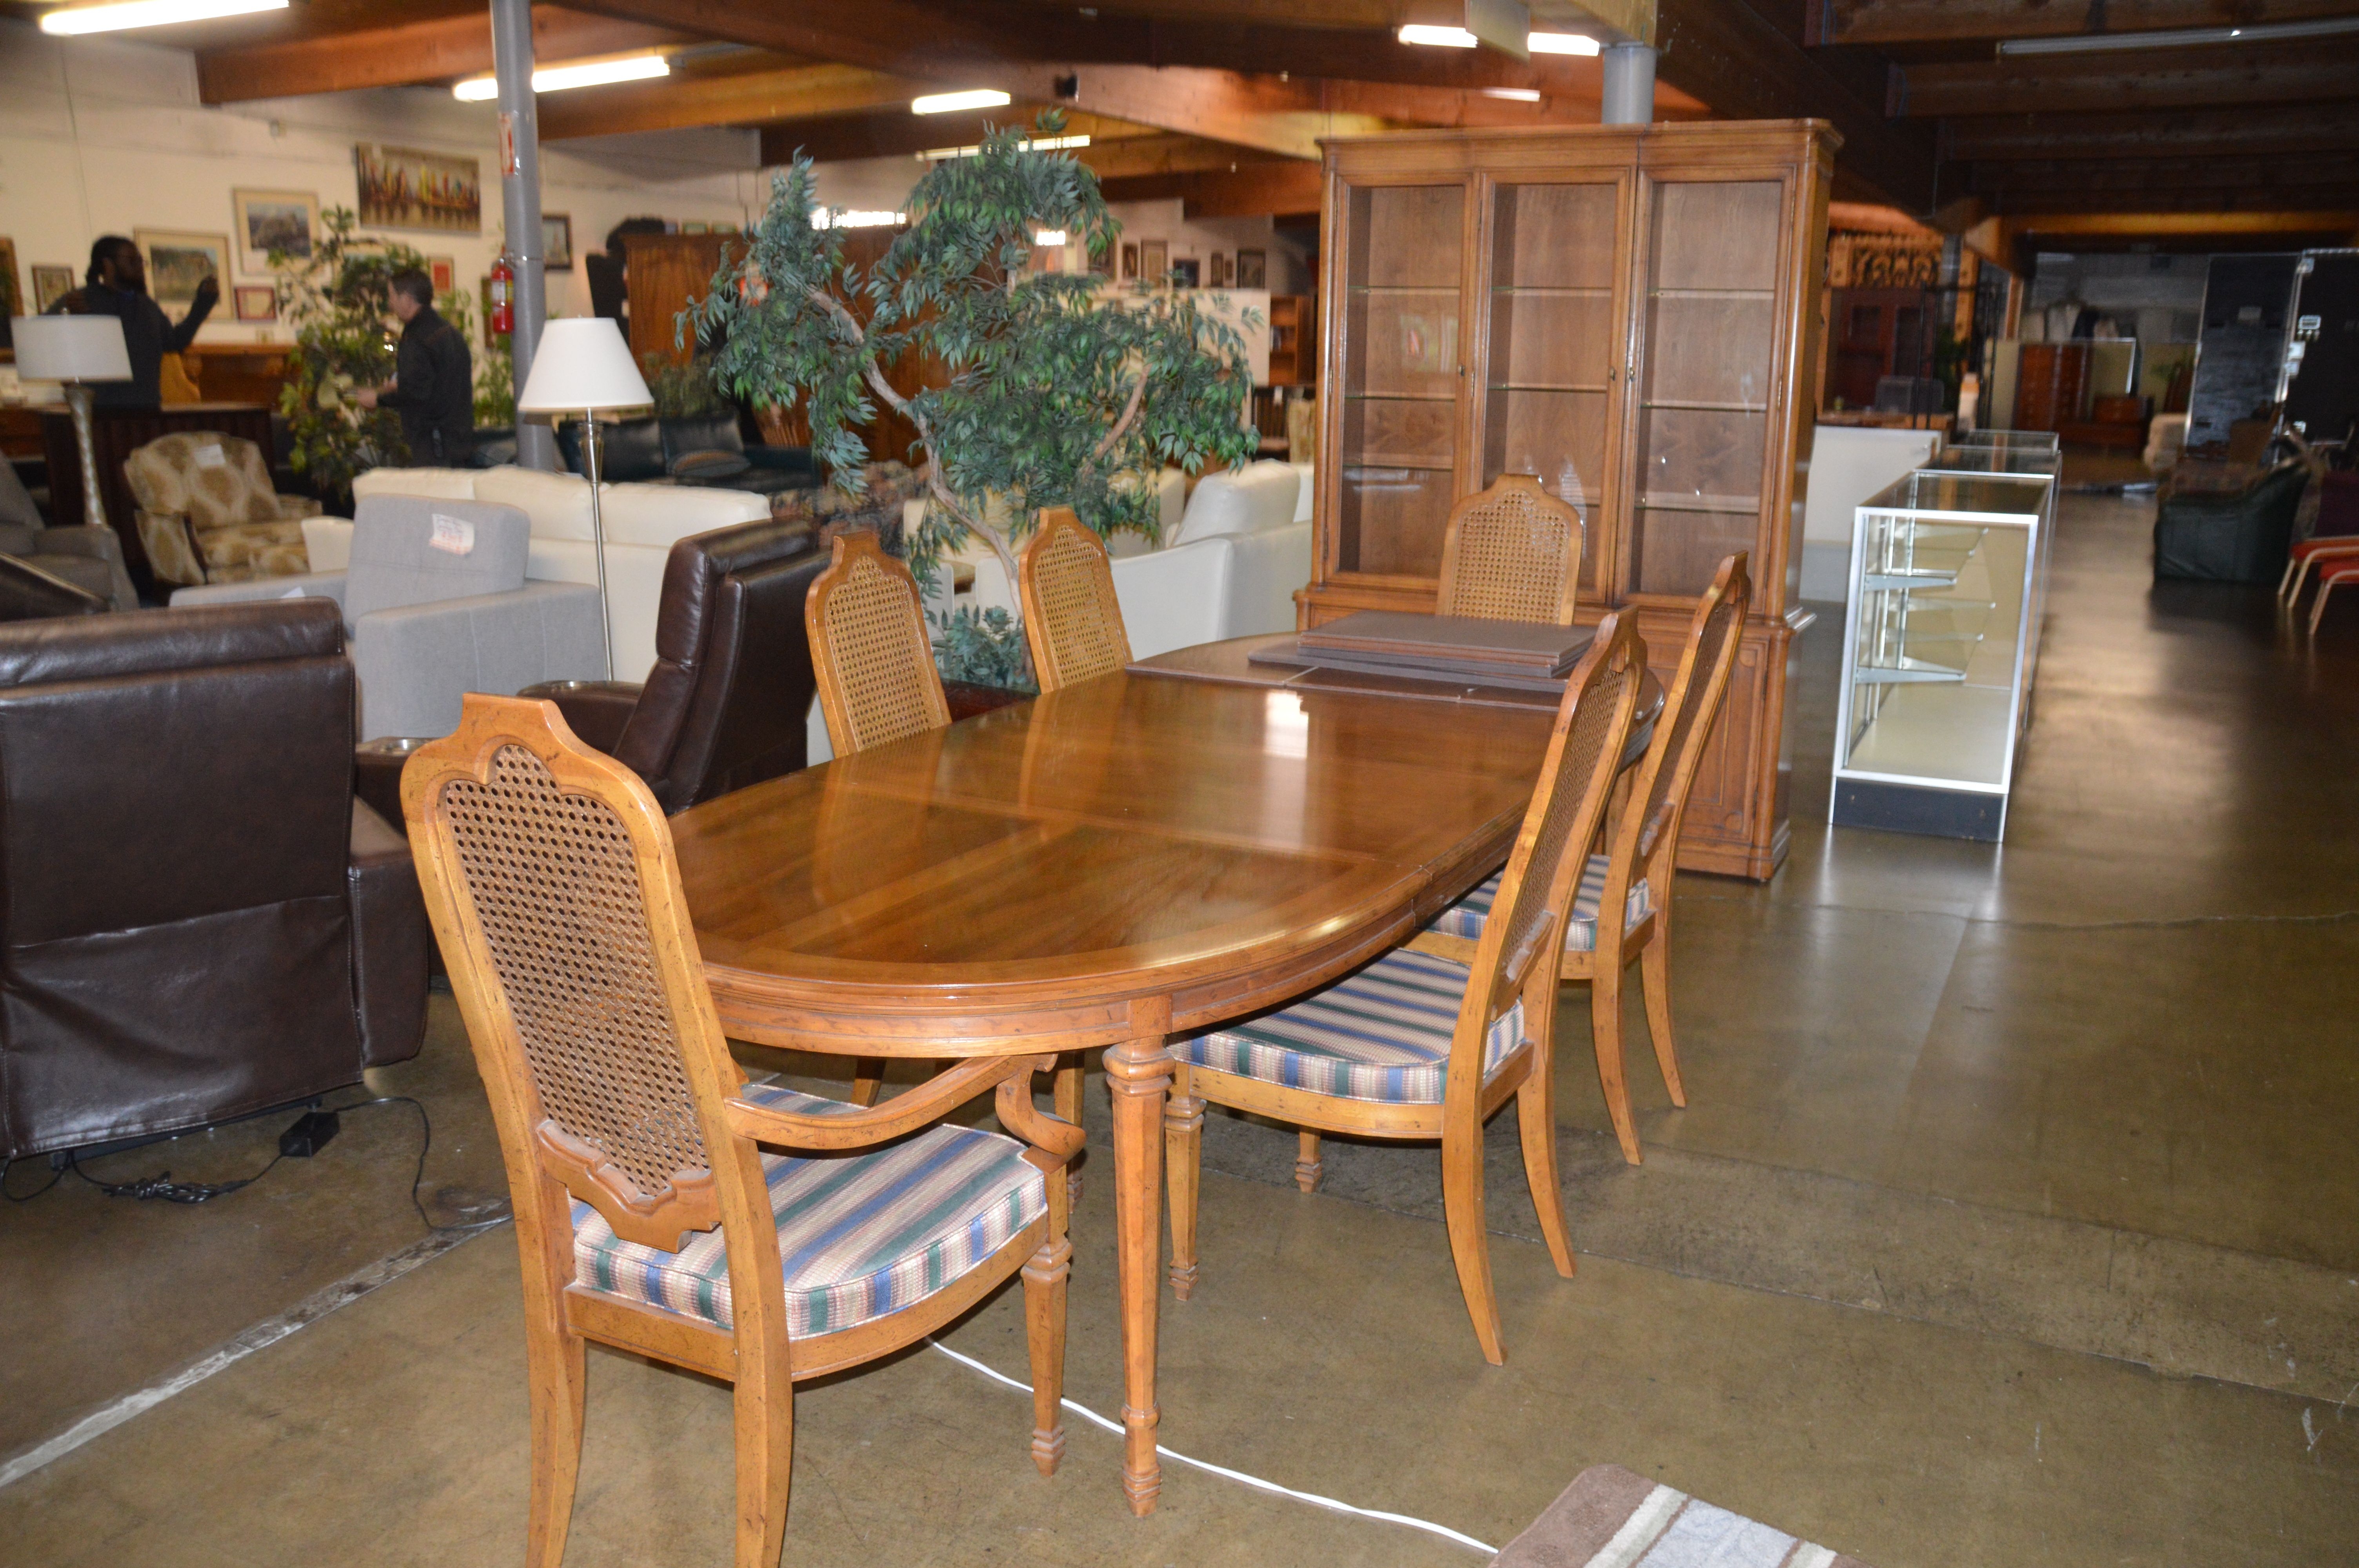 This Is A Heritage Dining Room Set. This Is A Quality American Made Set Of